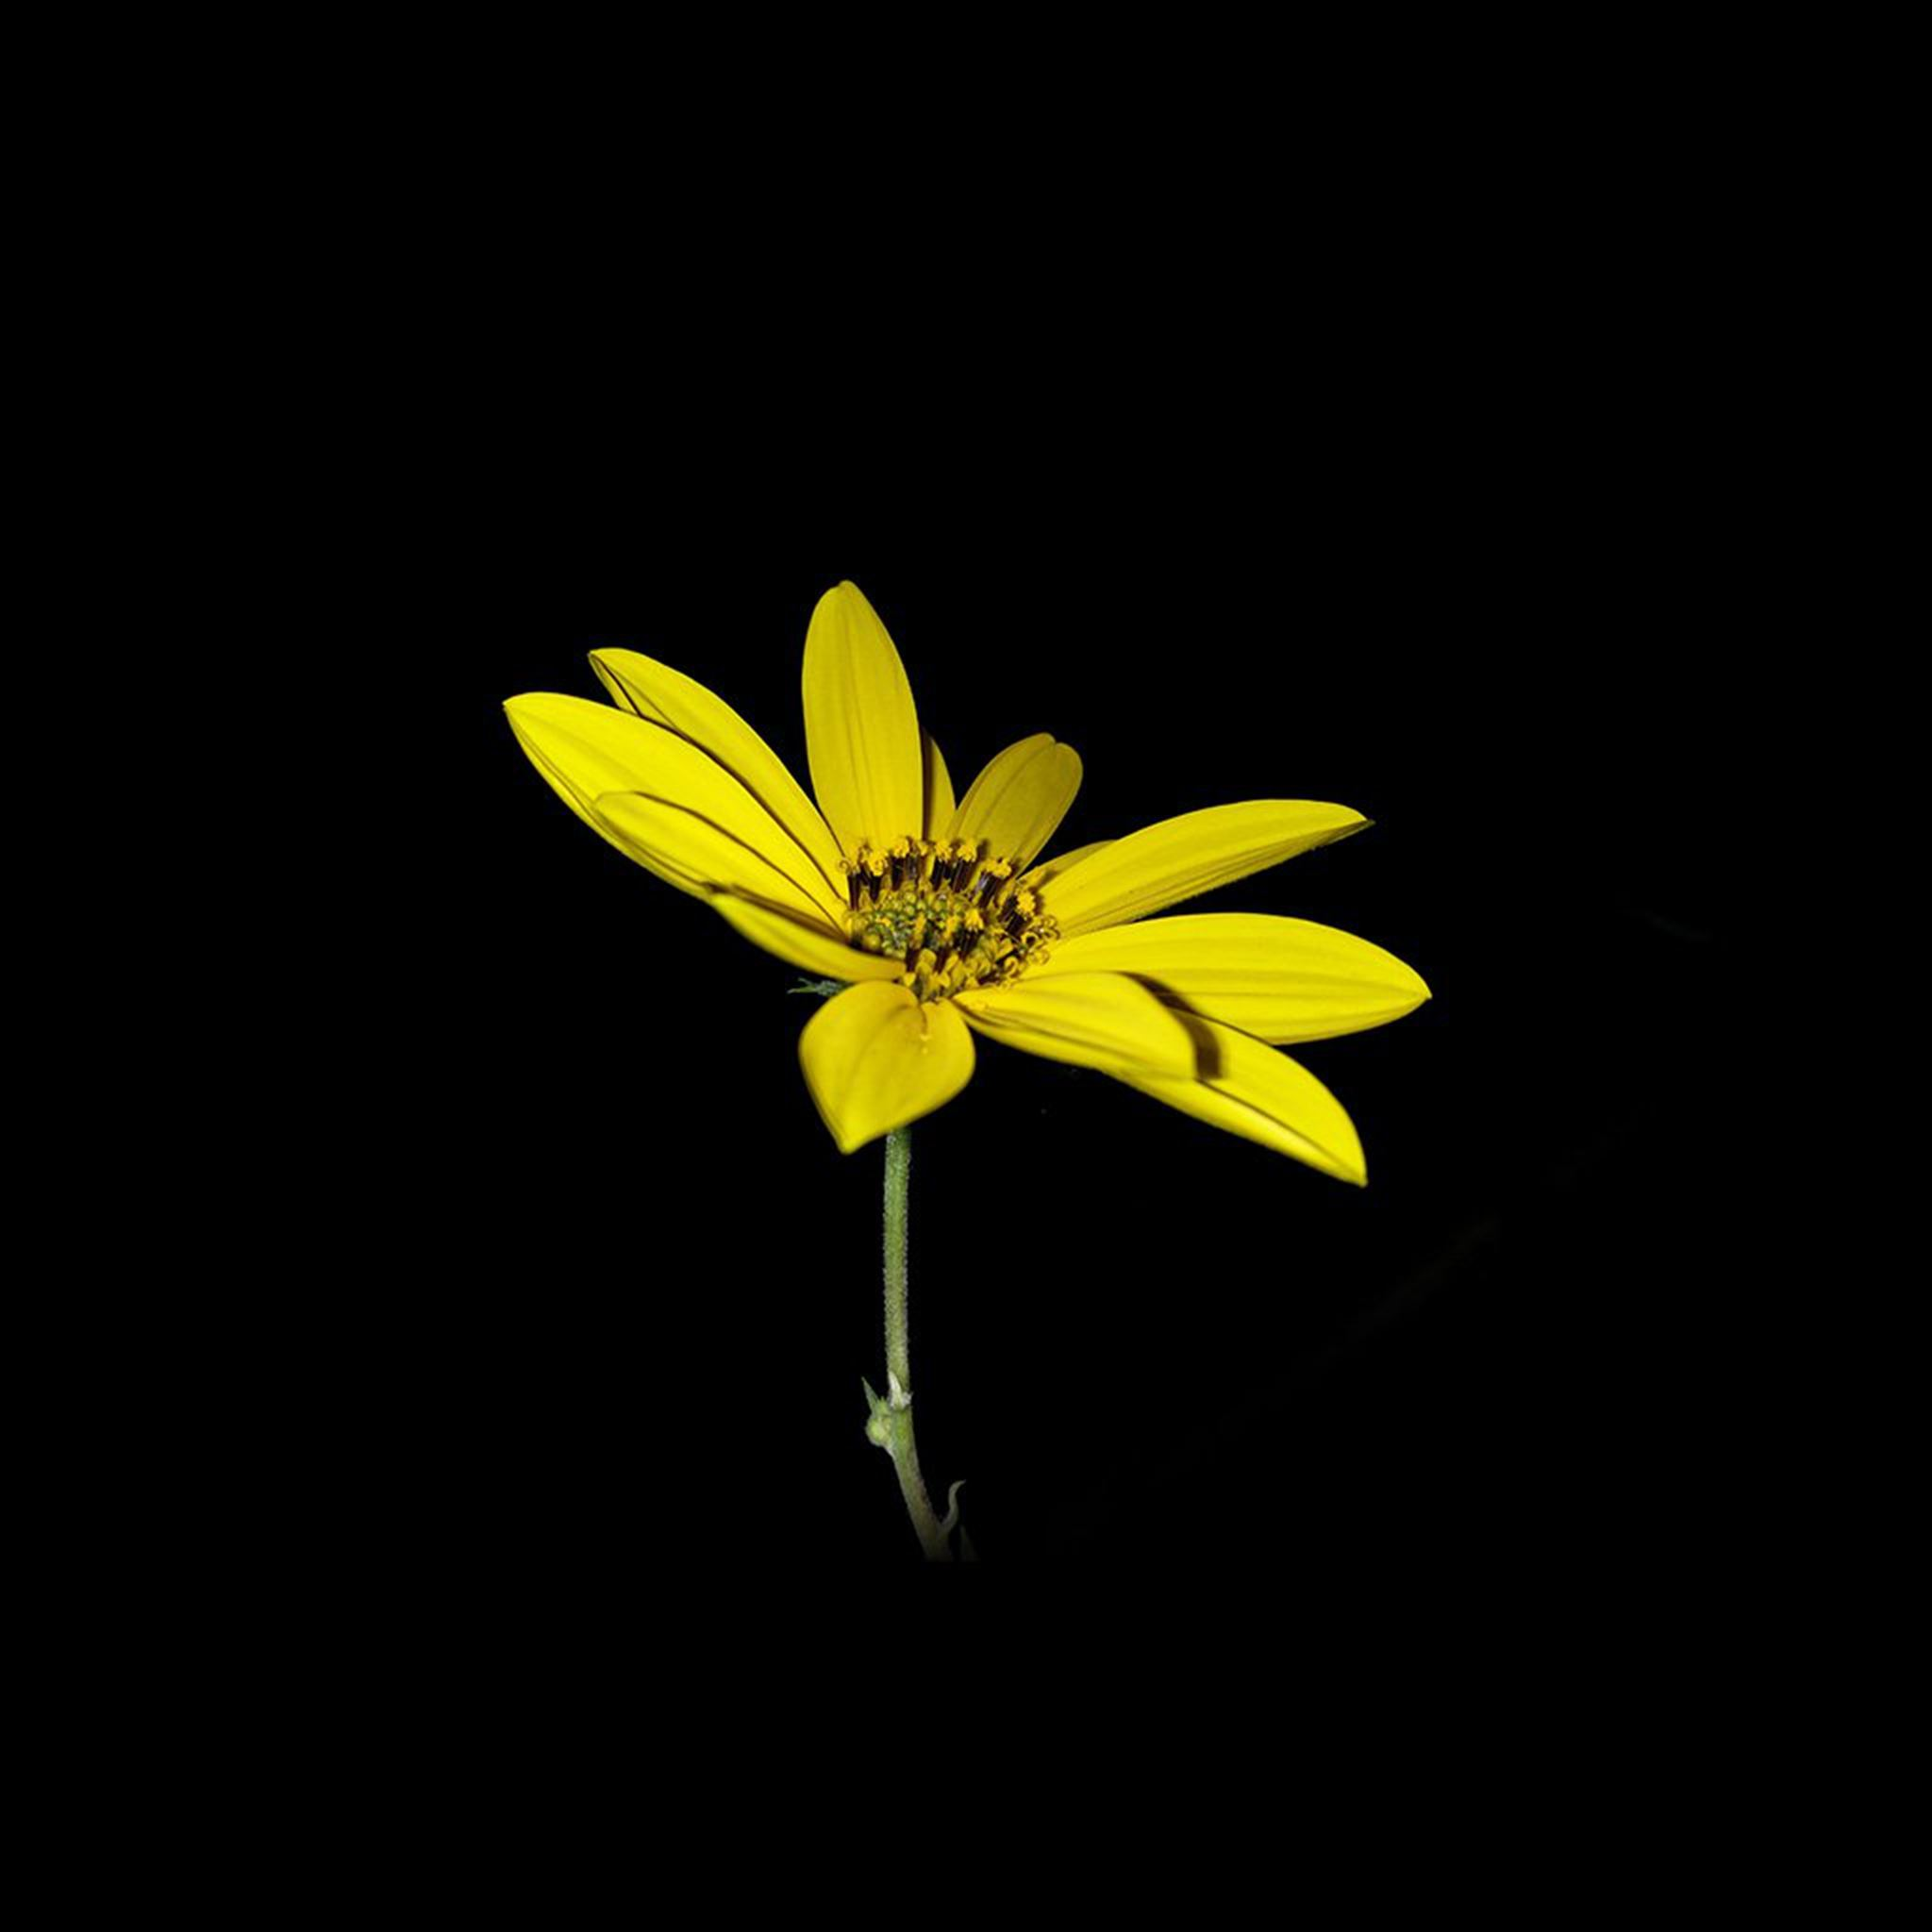 Flower Yellow Nature Art Dark Minimal Simple iPad Air wallpaper